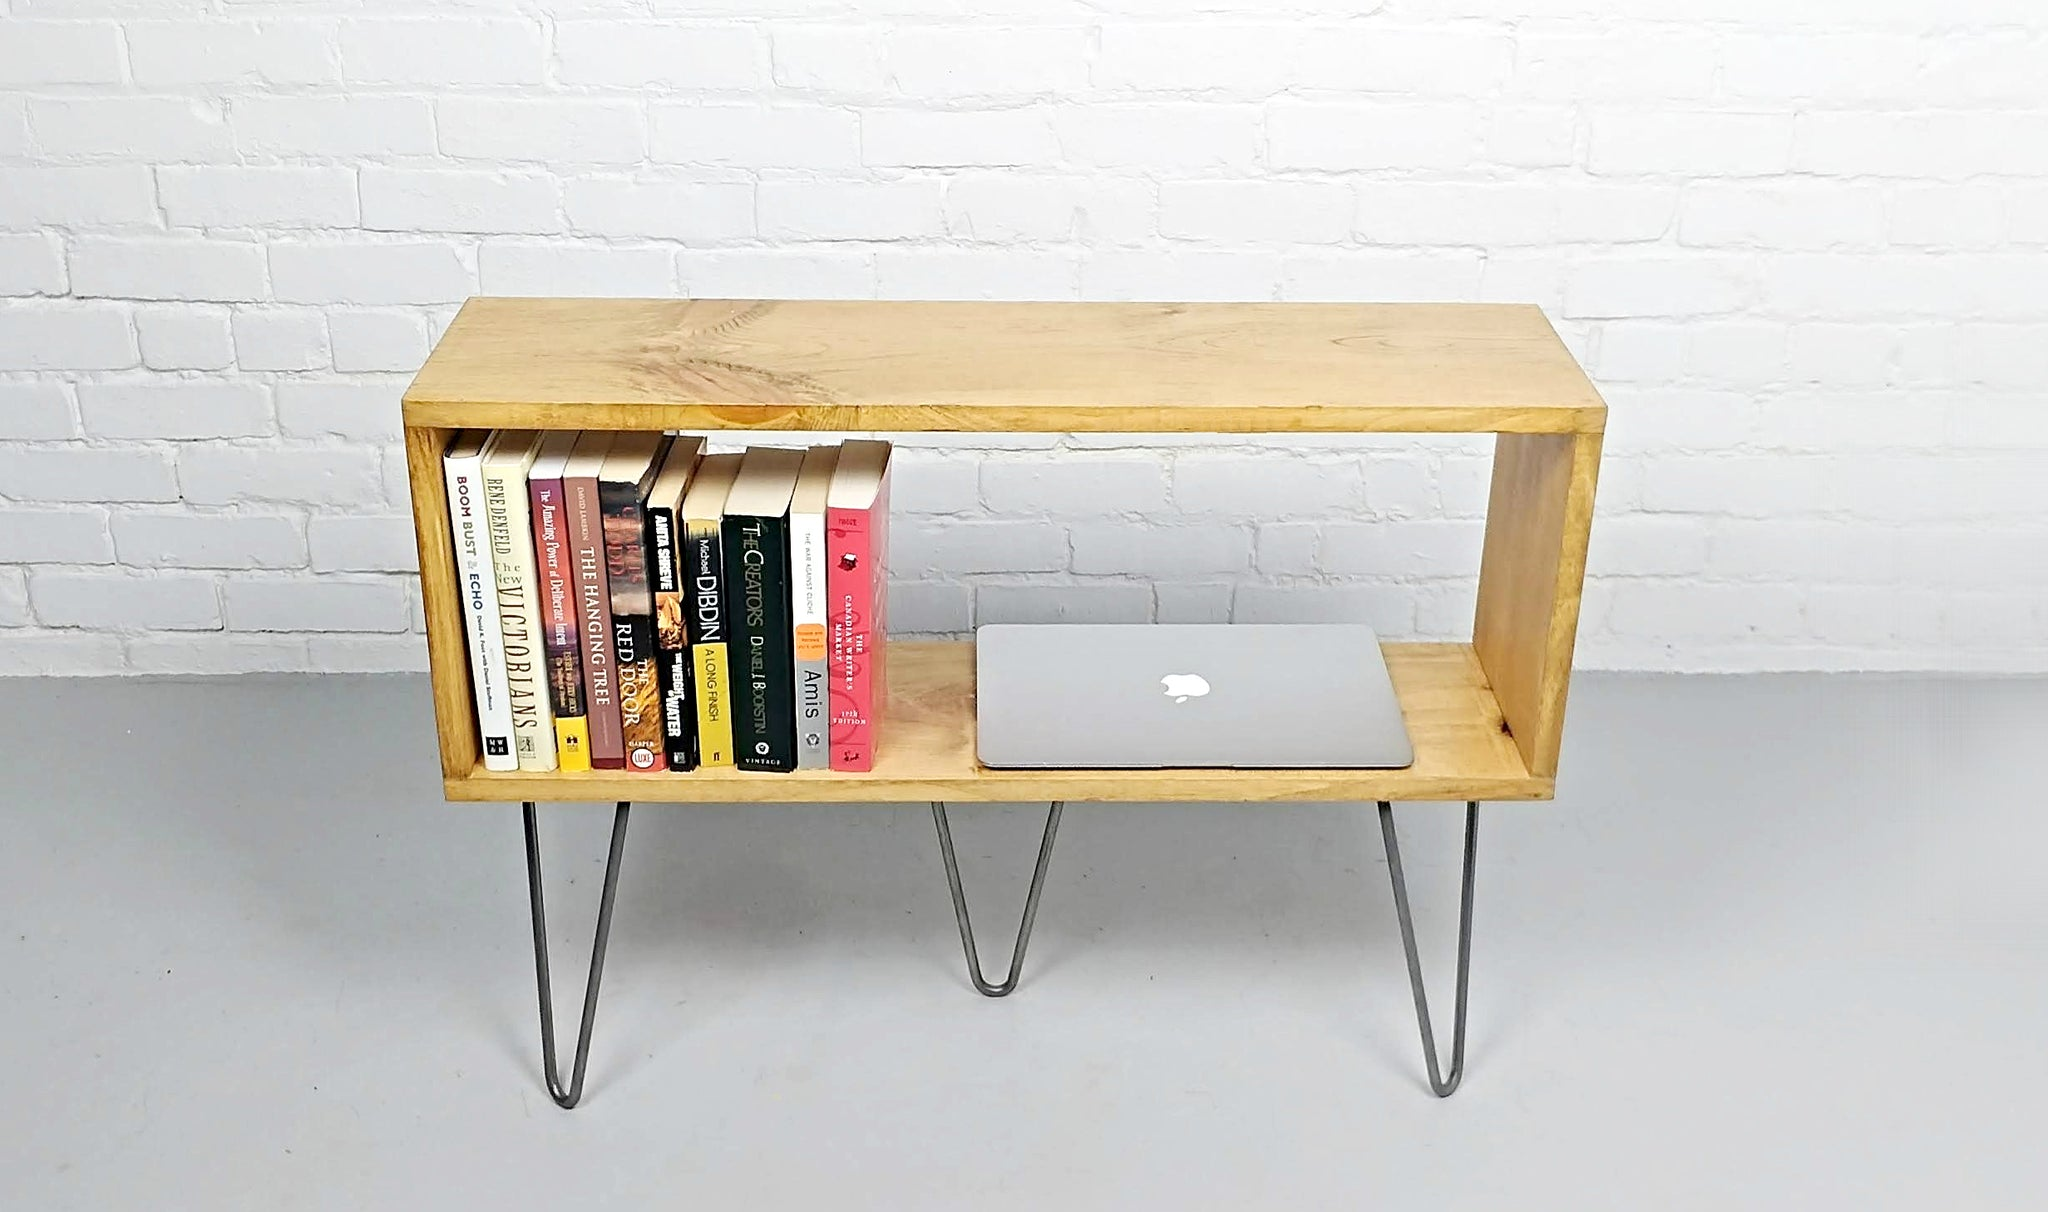 Charmant DREVO   Side Table, Bookshelf With An Oak Finish On Hairpin Legs